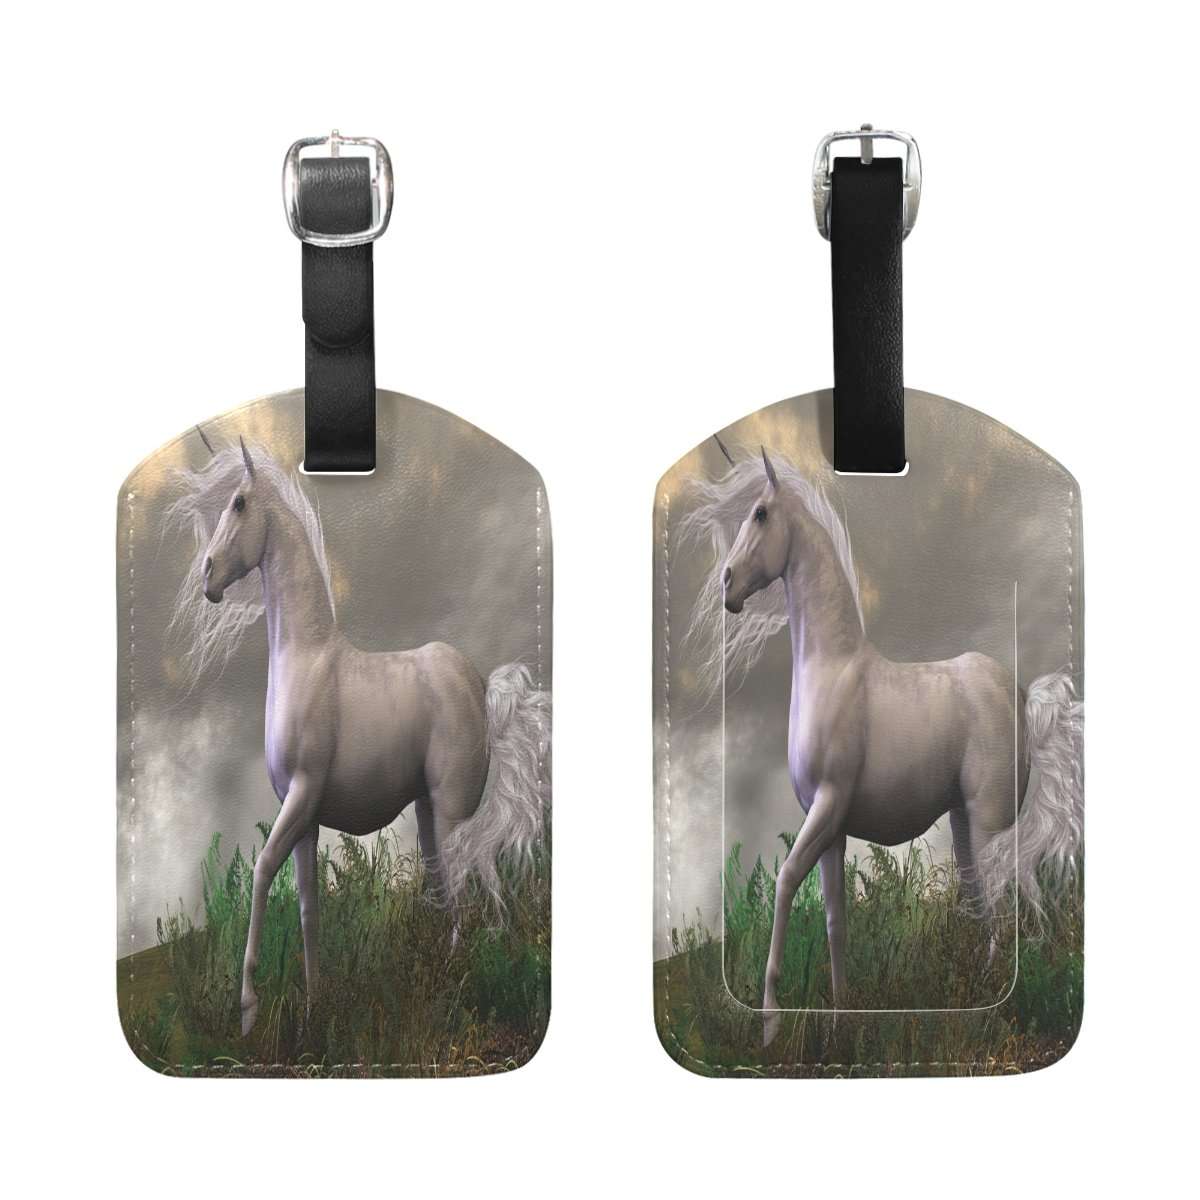 1Pcs Saobao Travel Luggage Tag White Unicorn PU Leather Baggage Suitcase Travel ID Bag Tag